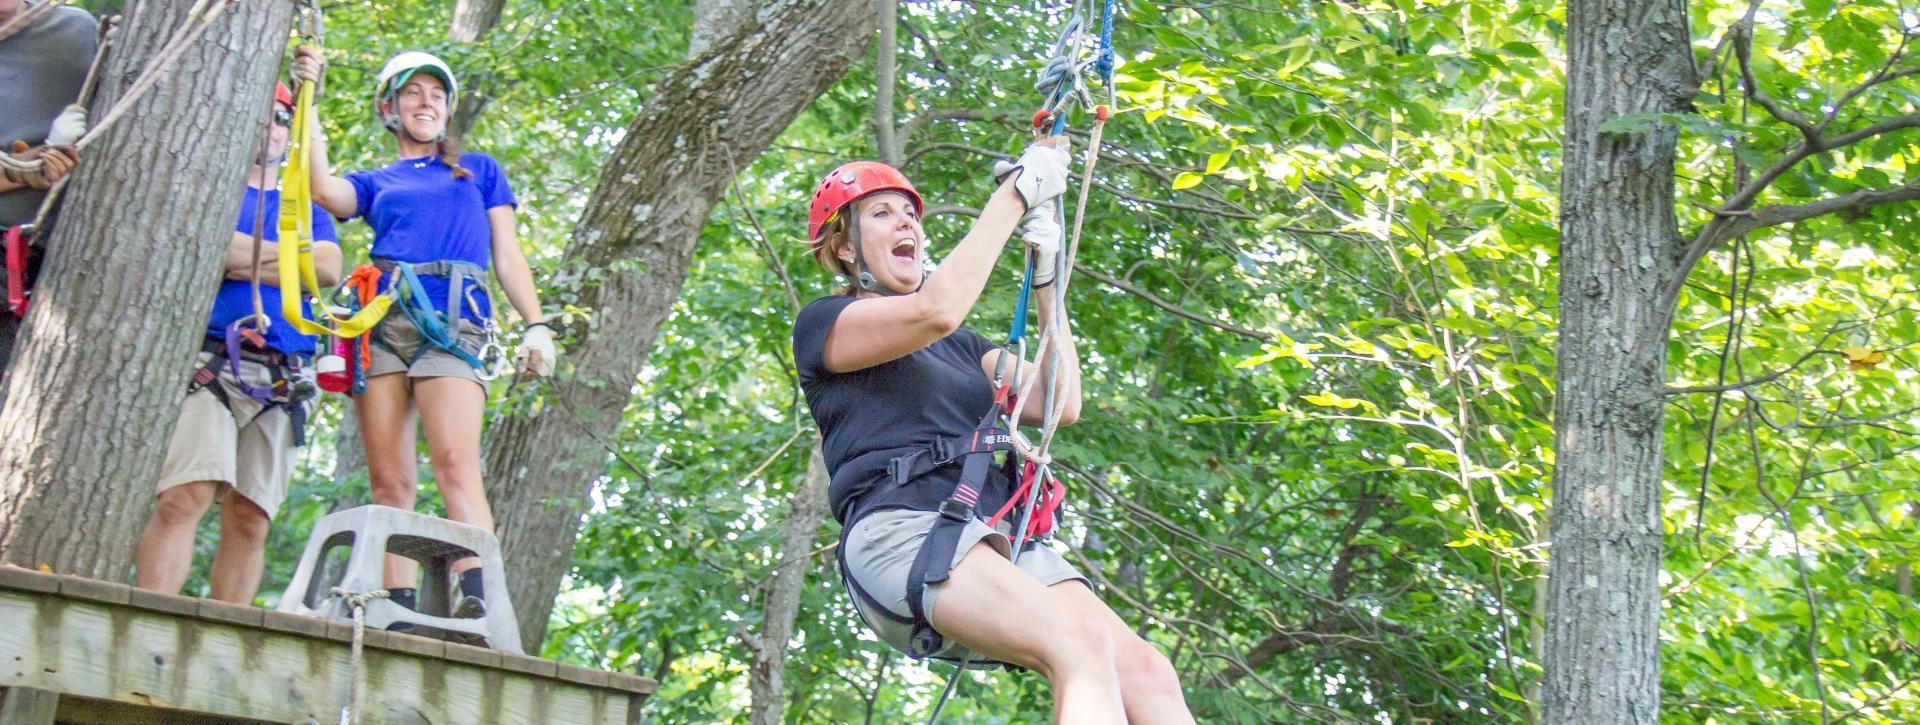 zip-line-roundtop-mountain-resort-adventure-outdoors